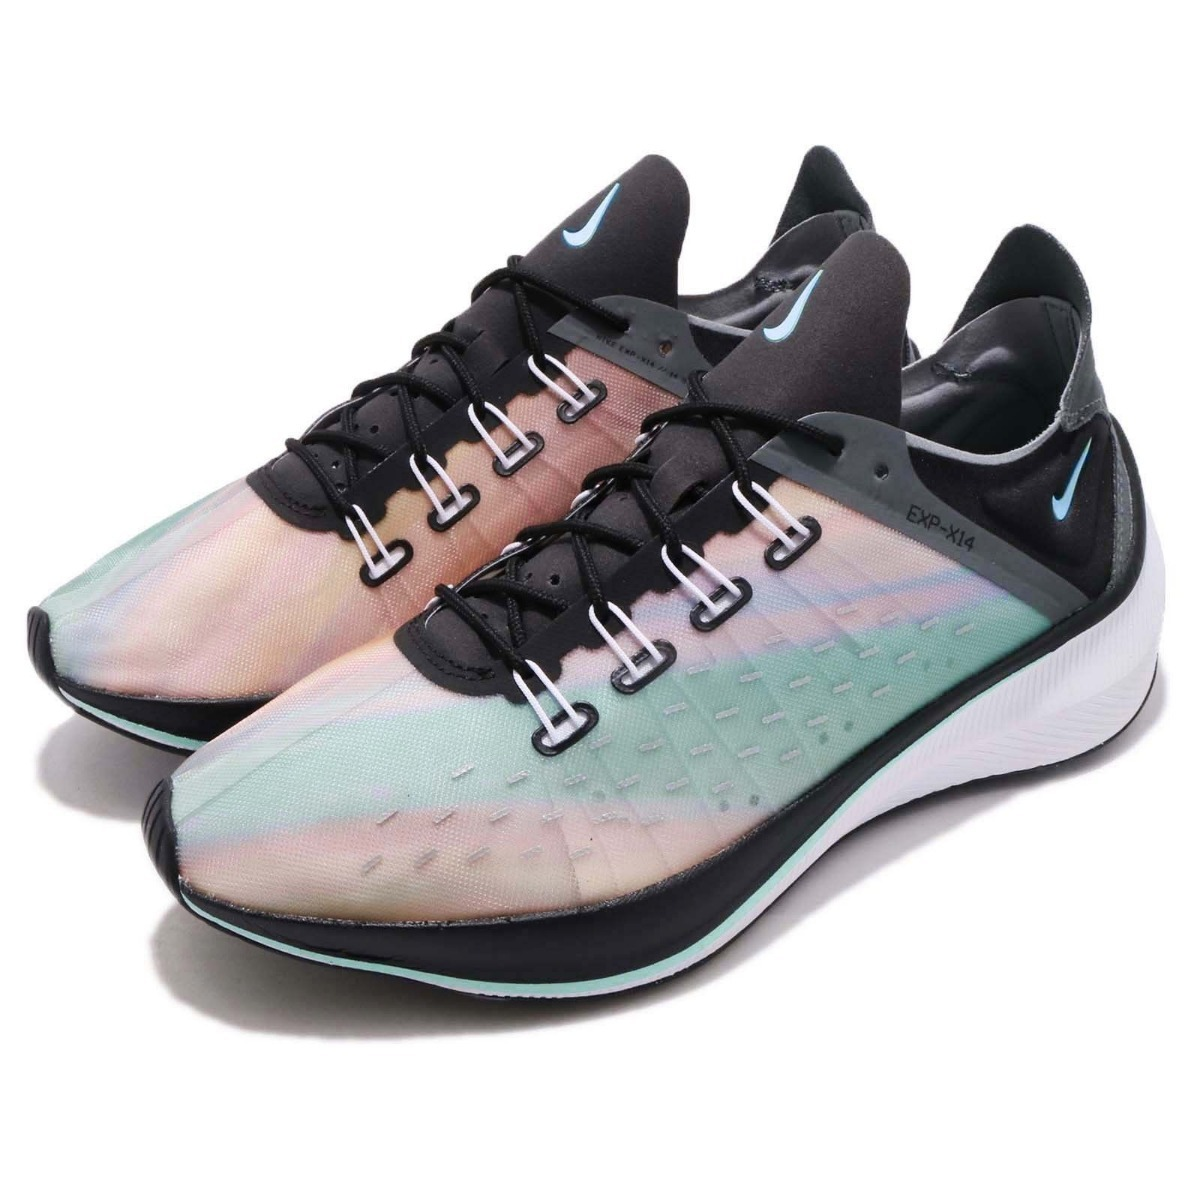 low priced e14b7 1f59a zapatillas nike exp-x14 qs. a pedido. Cargando zoom.